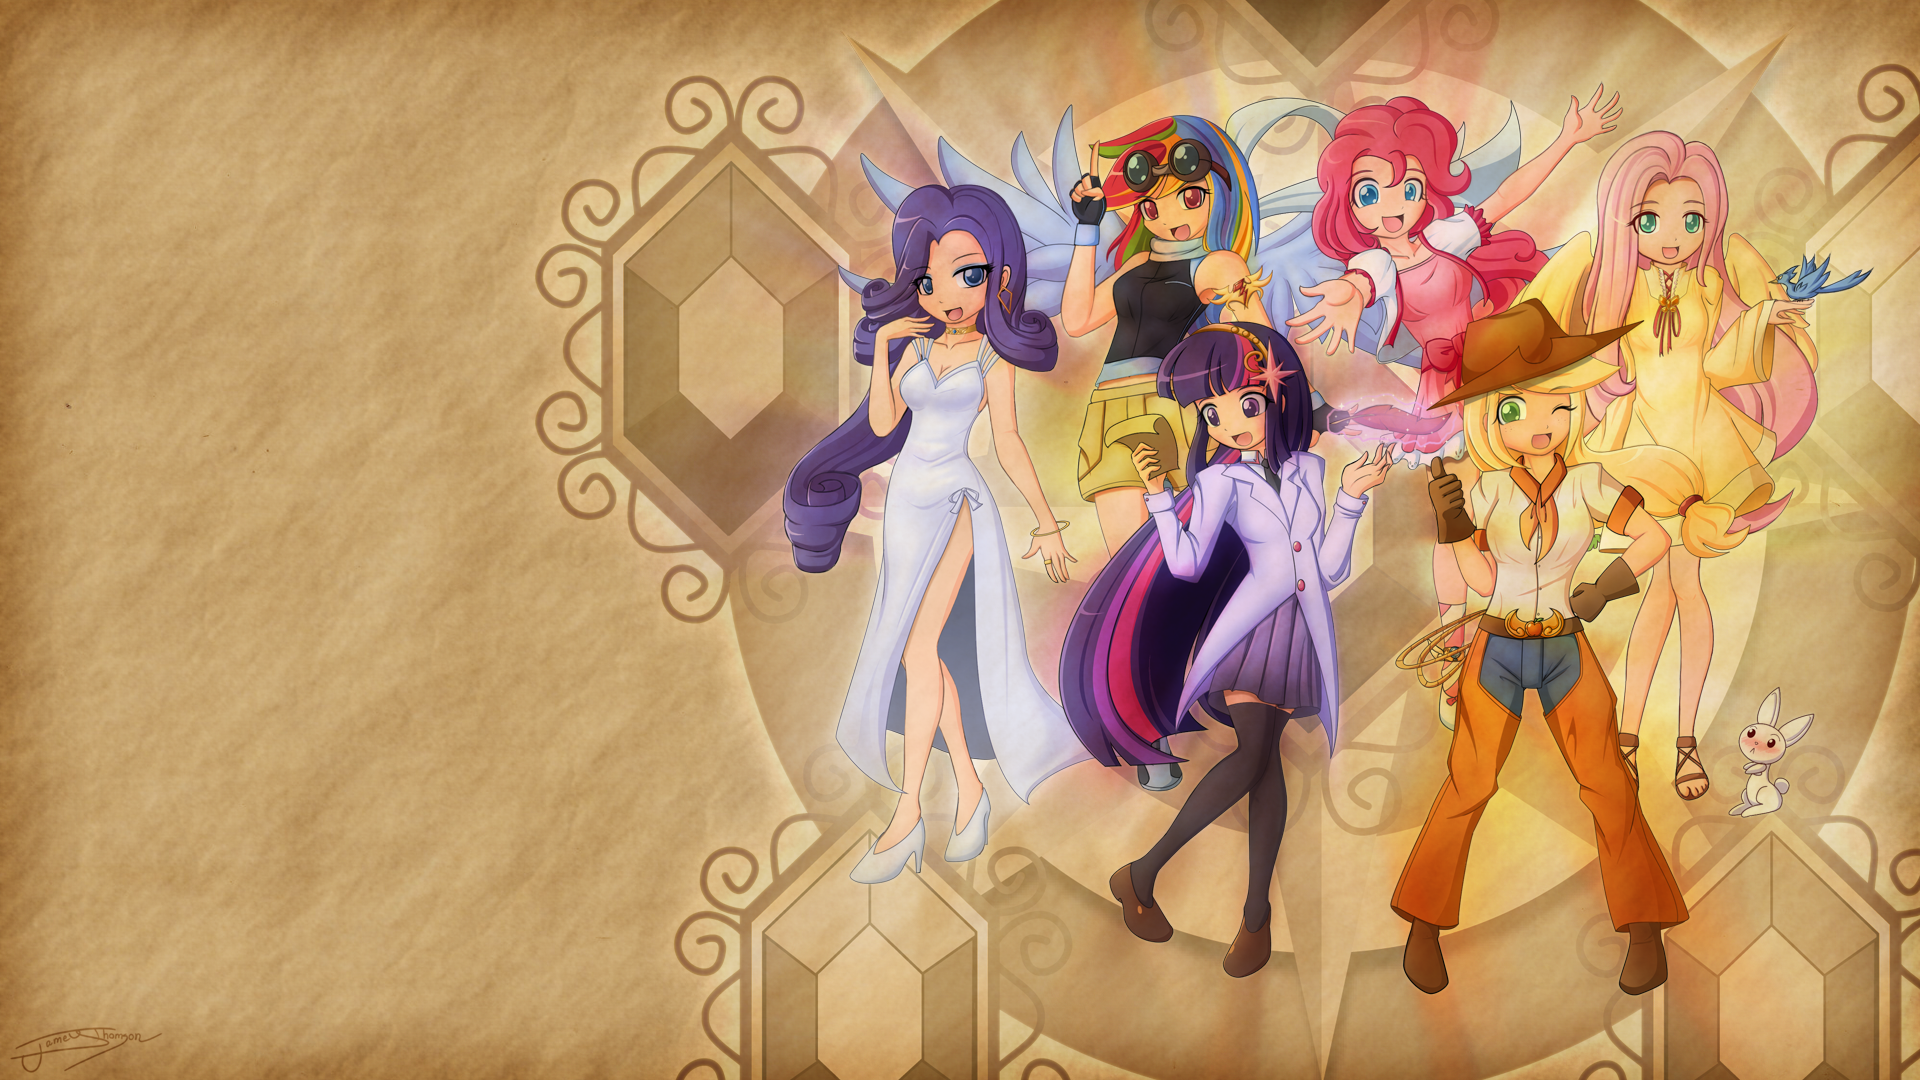 humanized my little pony images Human MLP HD wallpaper and background ...: www.fanpop.com/clubs/humanized-my-little-pony/images/31378286/title...